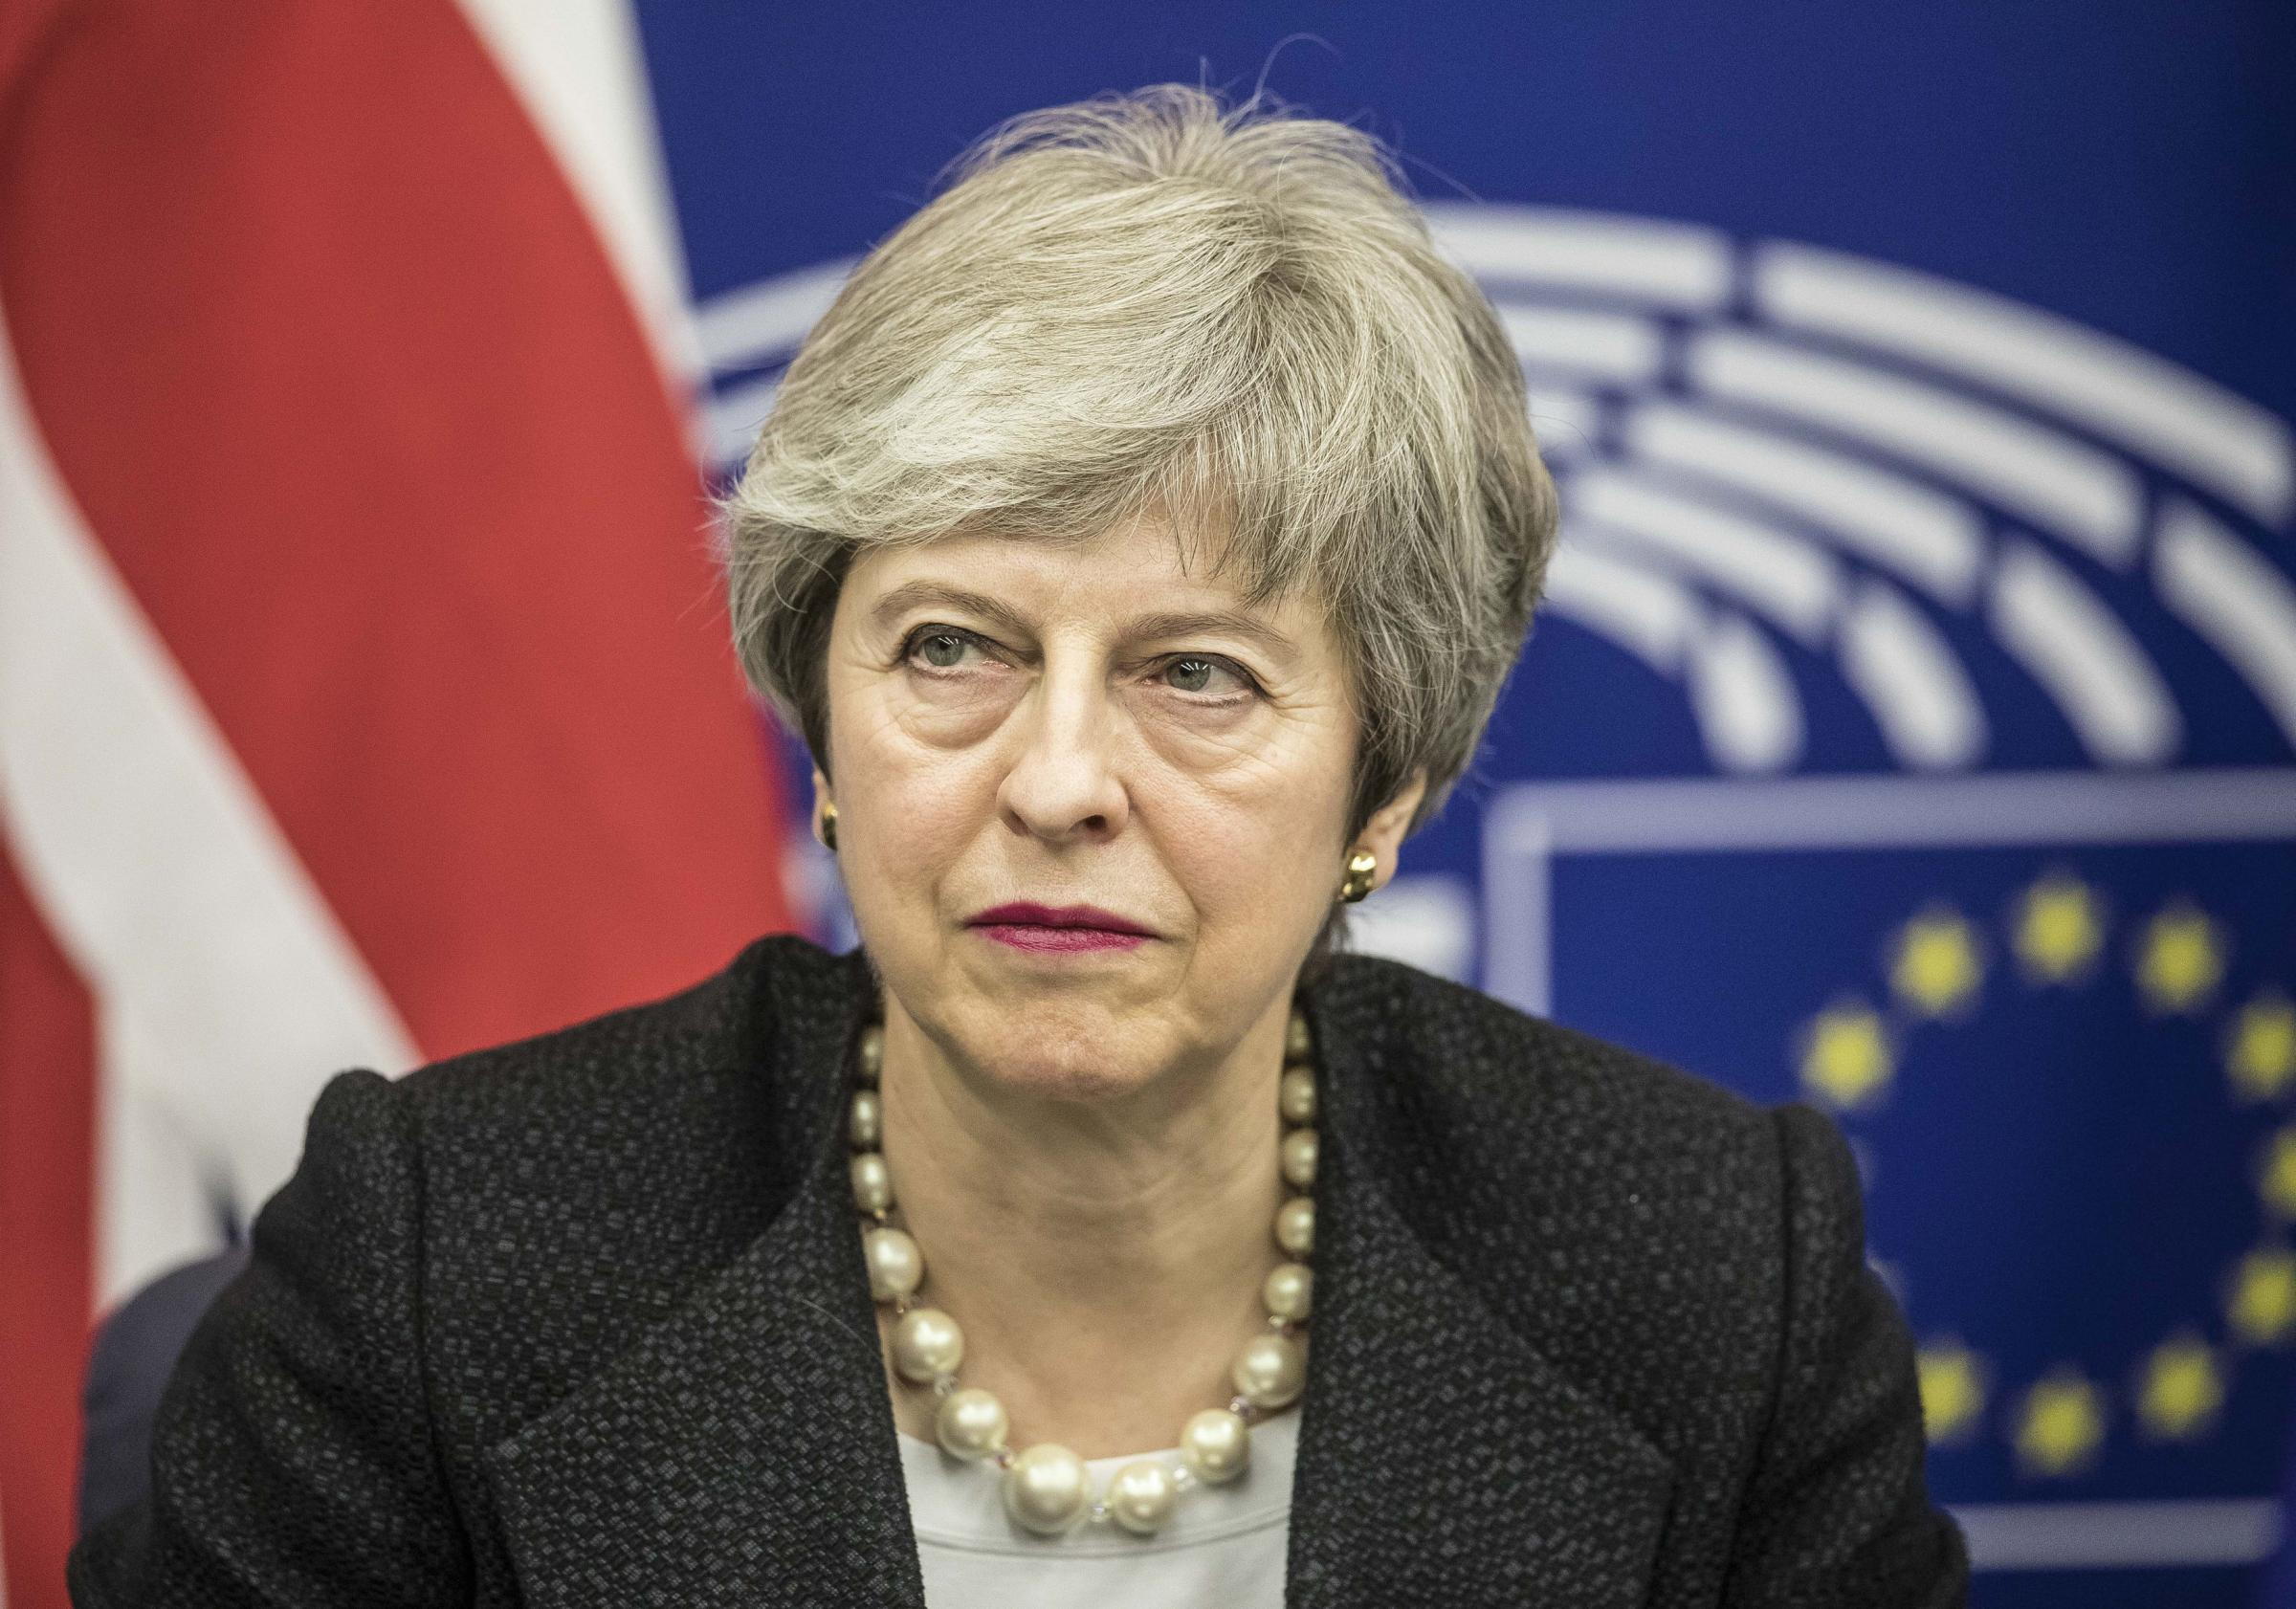 Should Theresa May resign is one question being put to Conservative councillors in a new survey by pollsters Survation